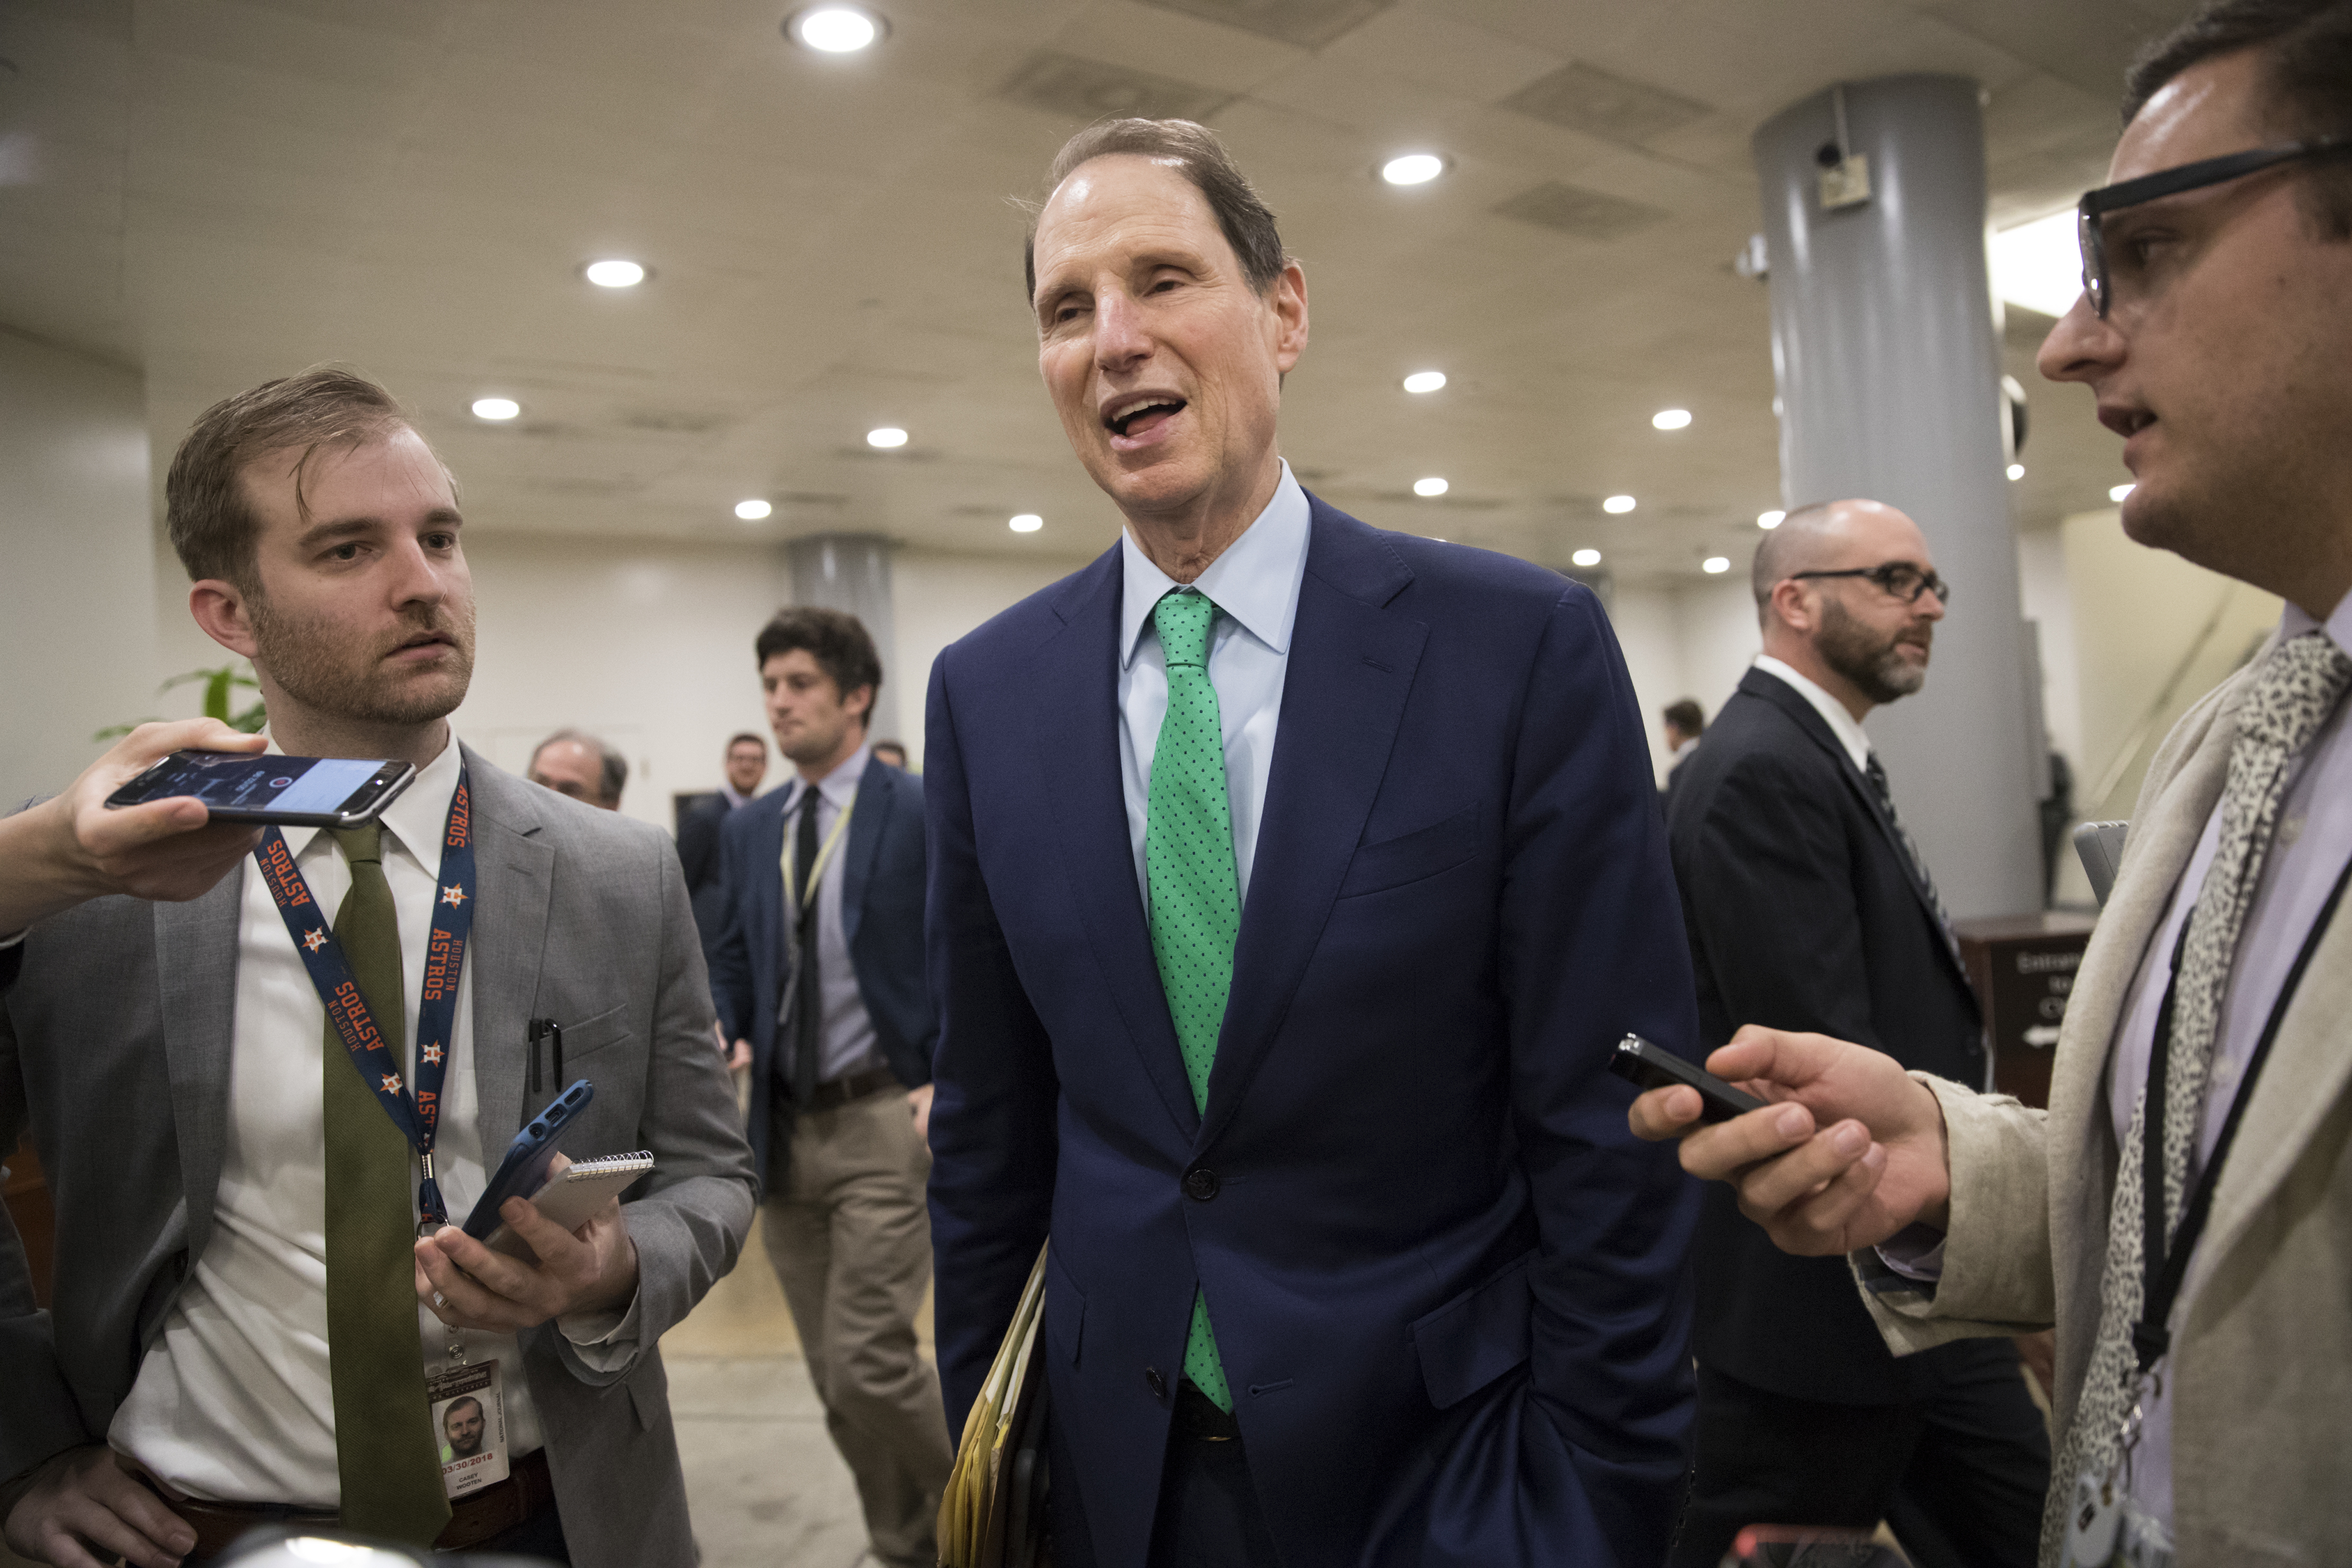 Sen. Ron Wyden, D-Ore., the ranking member of the Senate Finance Committee, arrives for votes at the Capitol in Washington, Oct. 19, 2017.